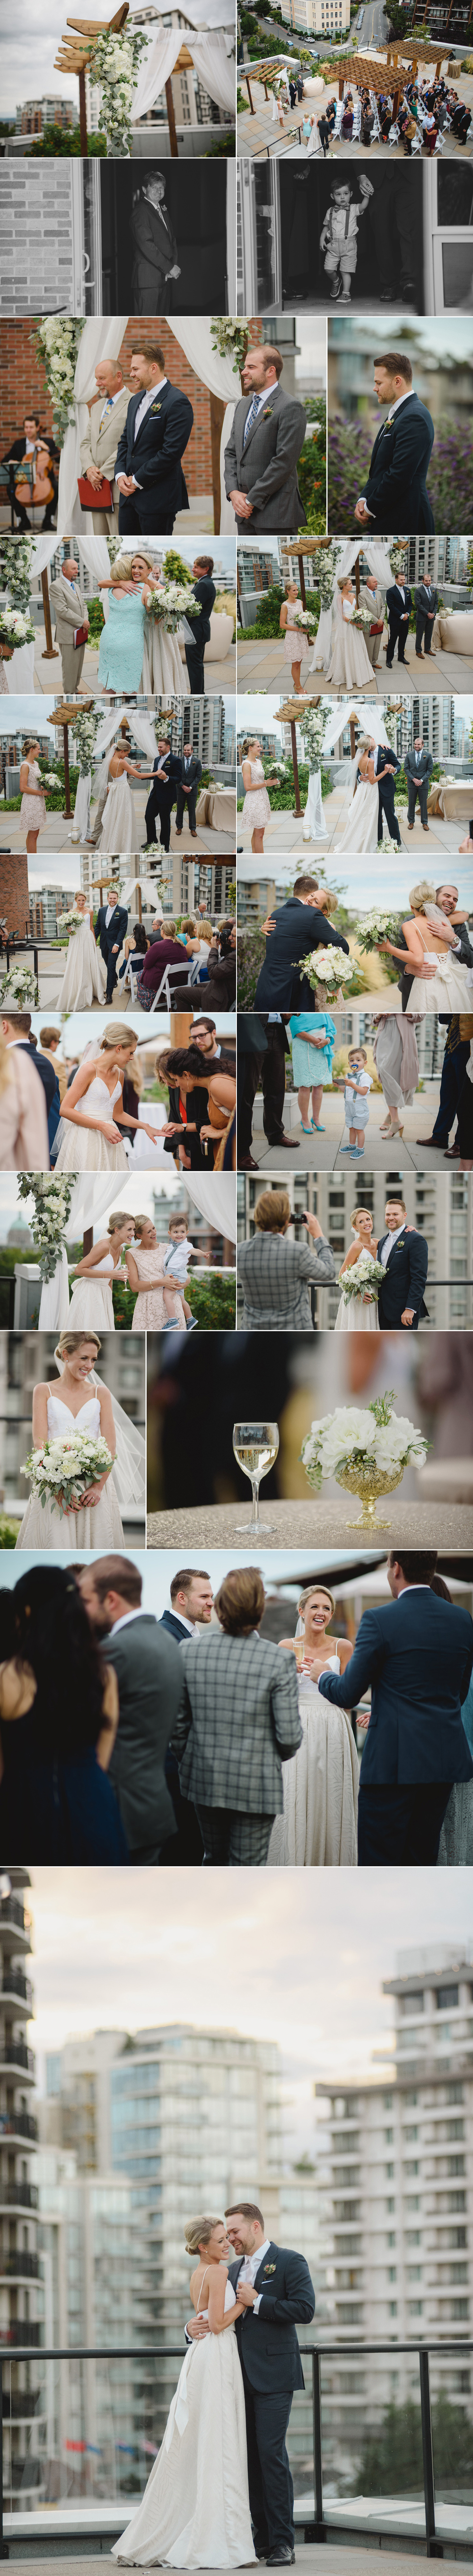 parkside wedding, victoria bc, rooftop wedding ceremony, city wedding, city chic wedding, erin wallis photography